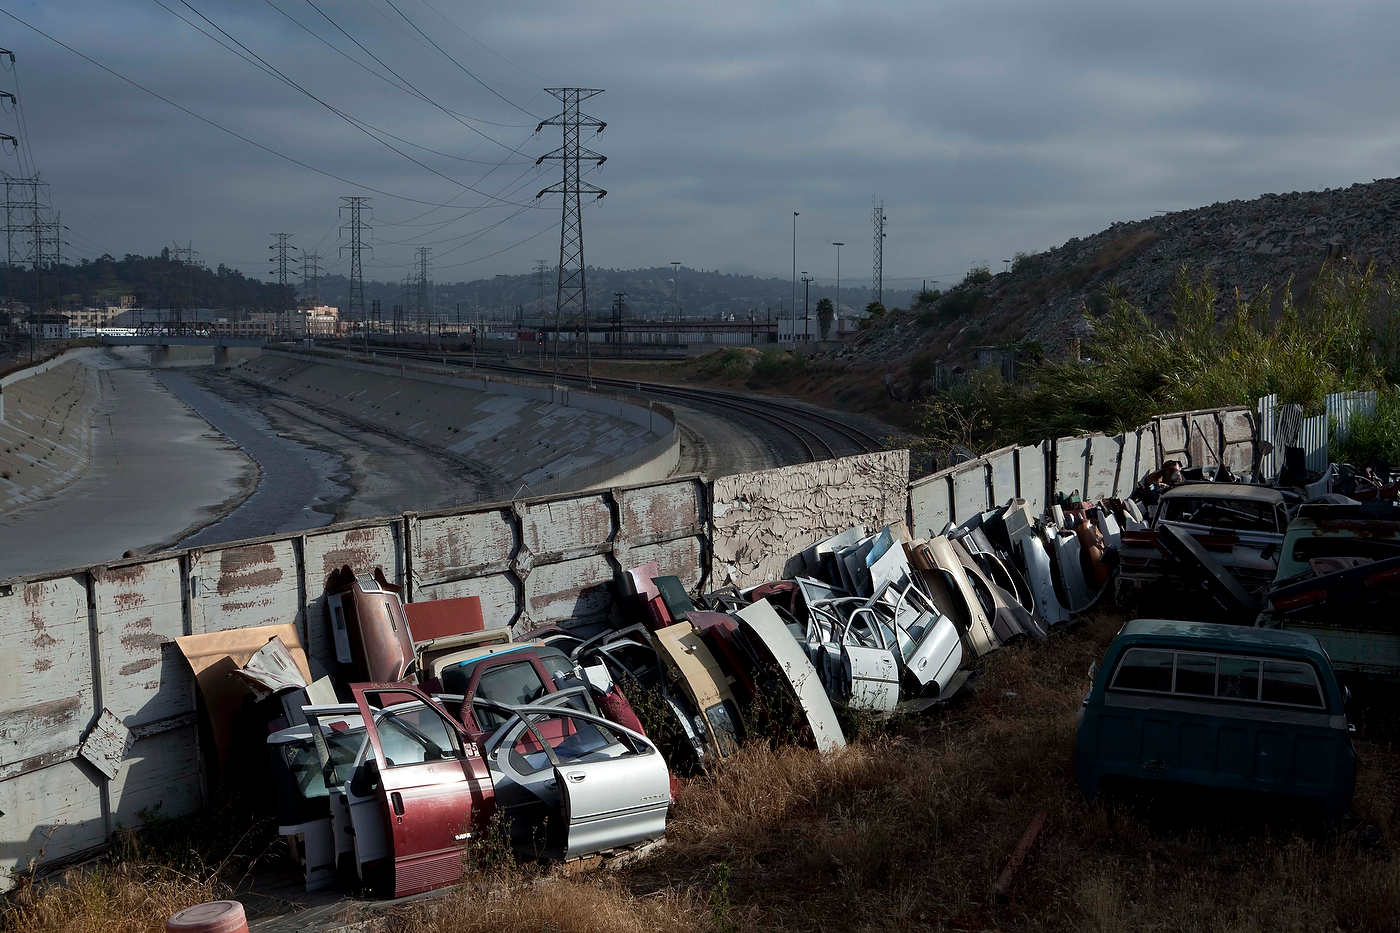 Junk yard near the Los Angeles River, Line 68.